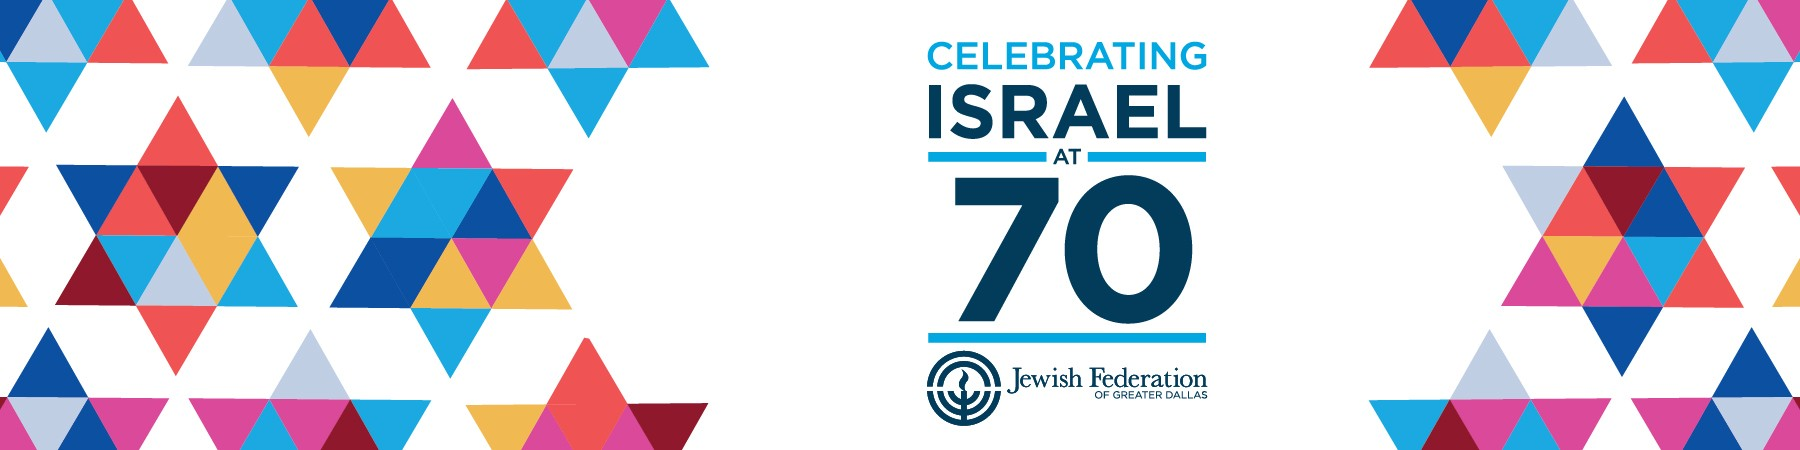 Celebrating Israel at 70_1800x450_4 website.jpg